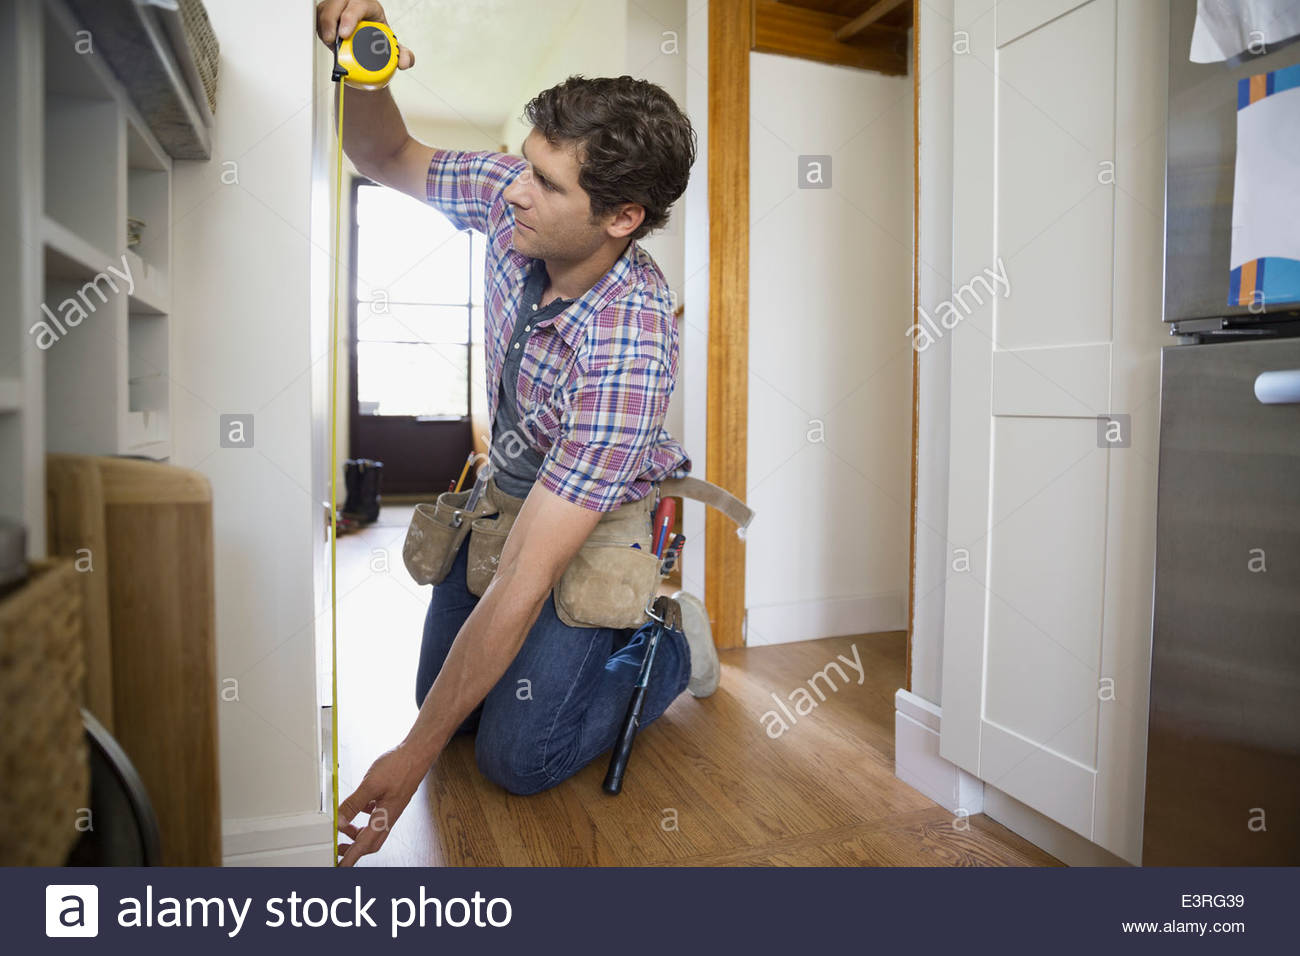 Man measuring wall with tape measure - Stock Image